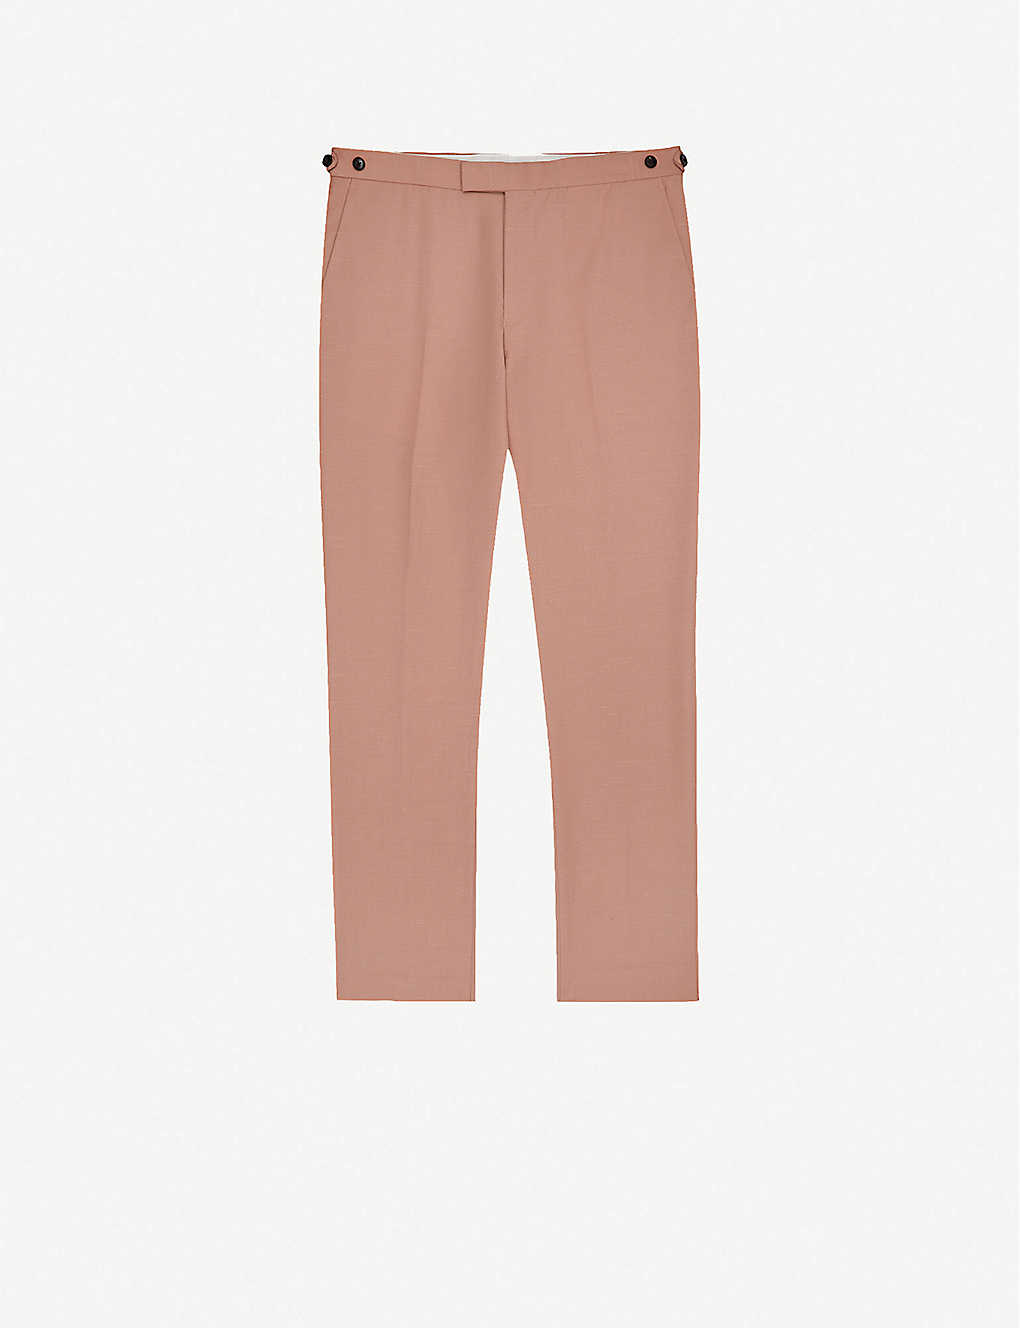 REISS: Exquisite slim-fit wool-blend trousers